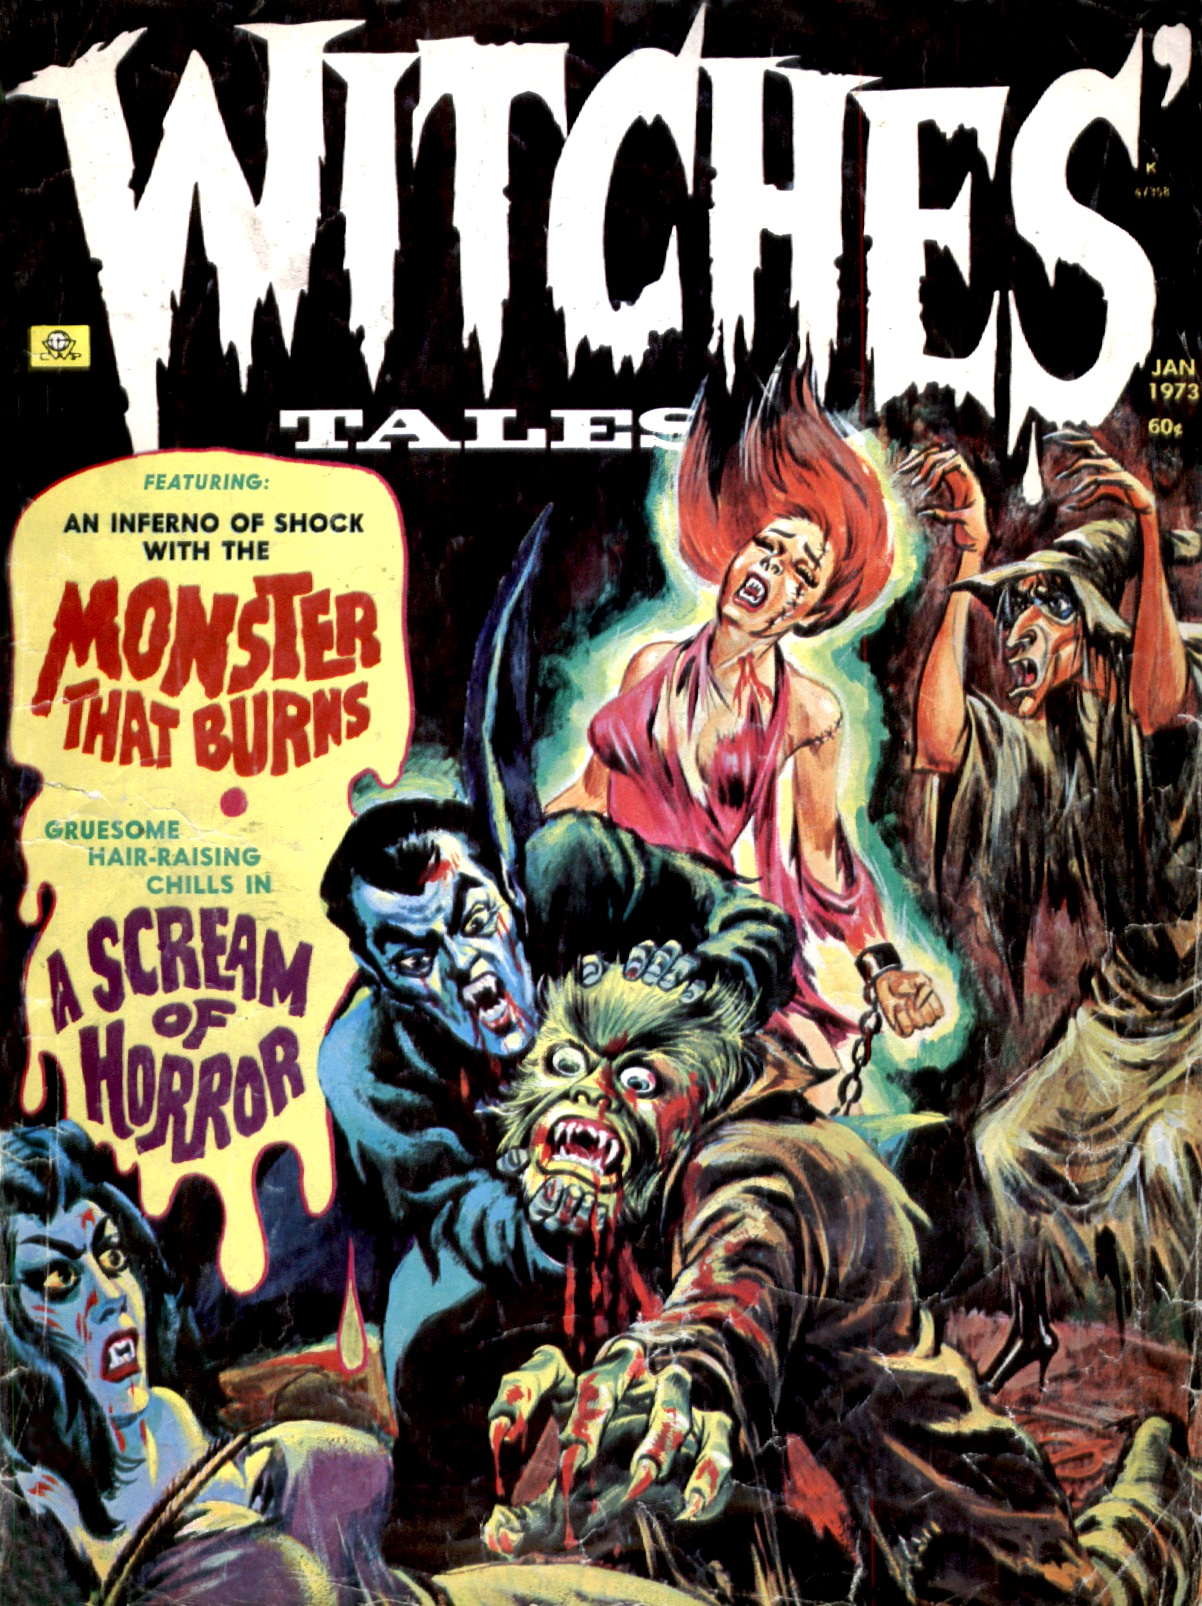 Witches' Tales Vol. 5 #1 (Eerie Publications 1973)